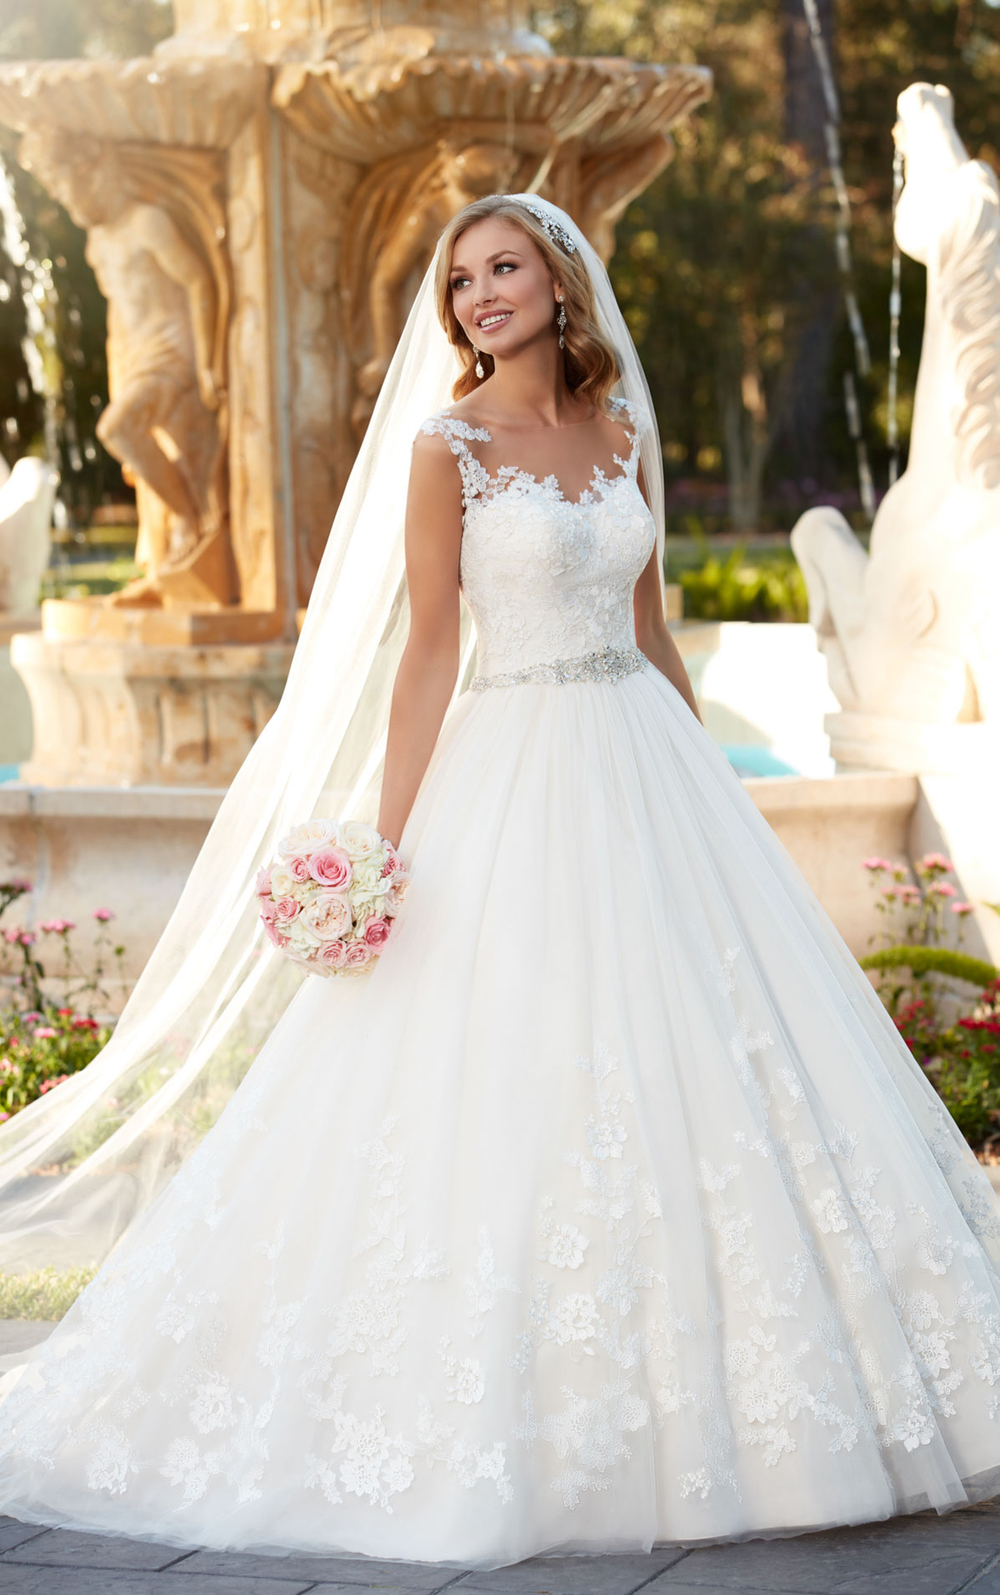 Bride: Dreams Bridal Boutique